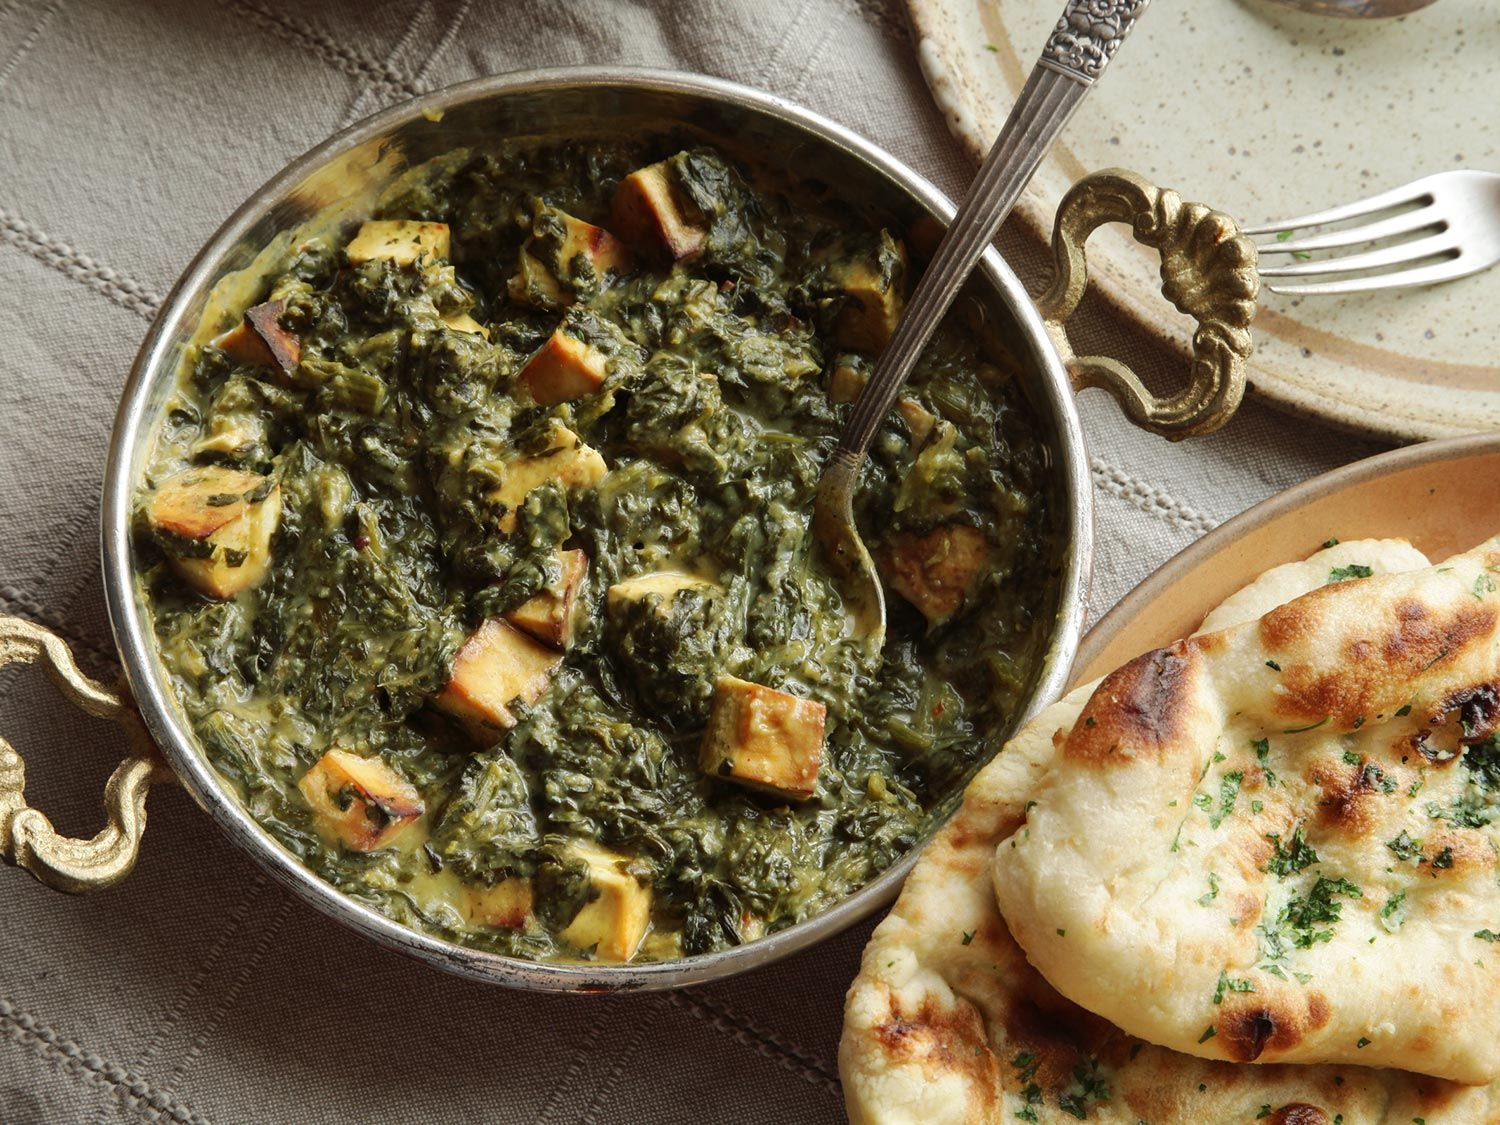 The food lab how to make rich and creamy vegan saag paneer saag the food lab how to make rich and creamy vegan saag paneer forumfinder